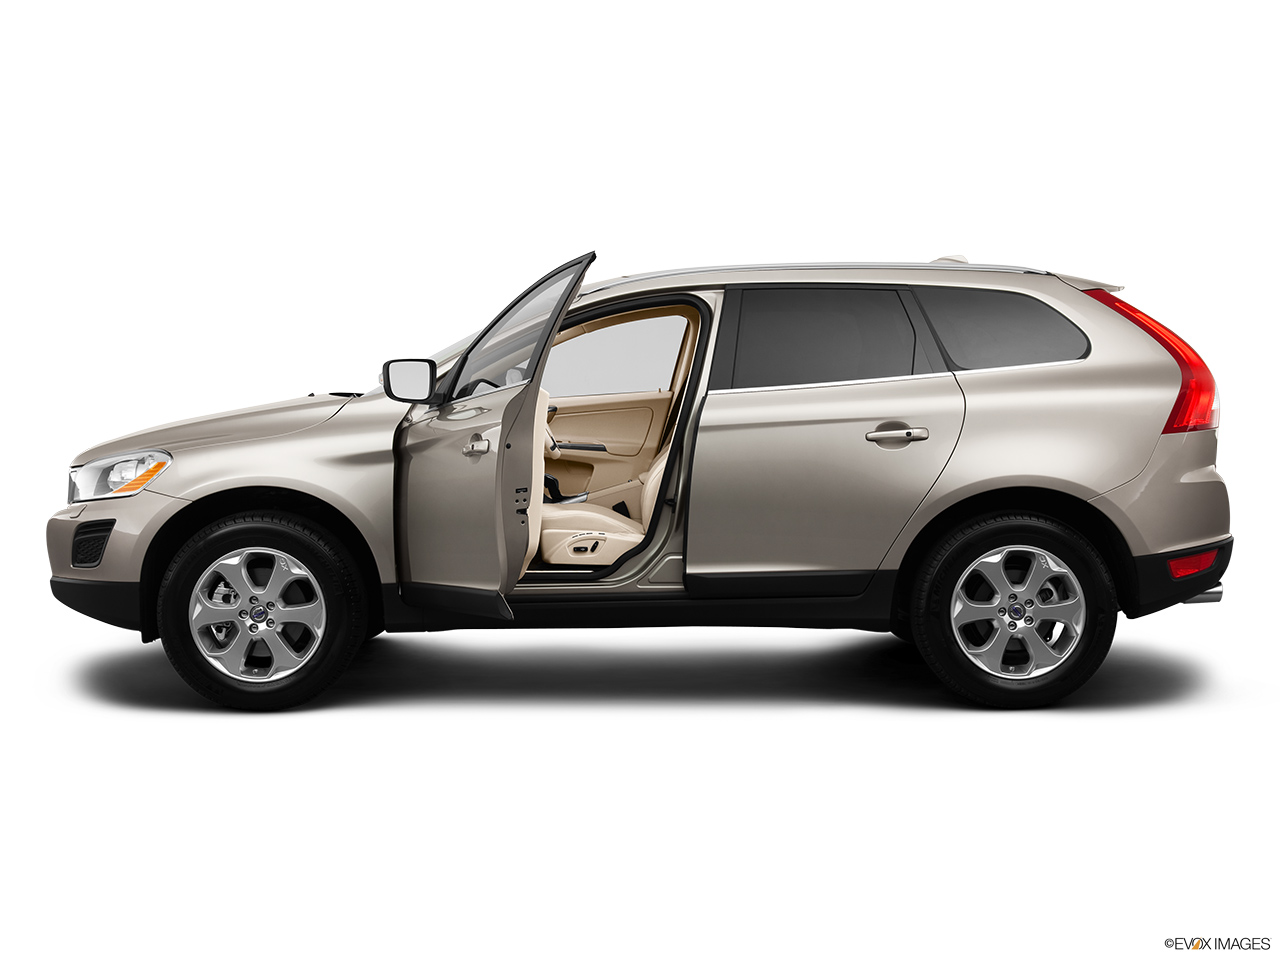 2013 Volvo XC60 3.2 FWD Premier Plus Driver's side profile with drivers side door open.